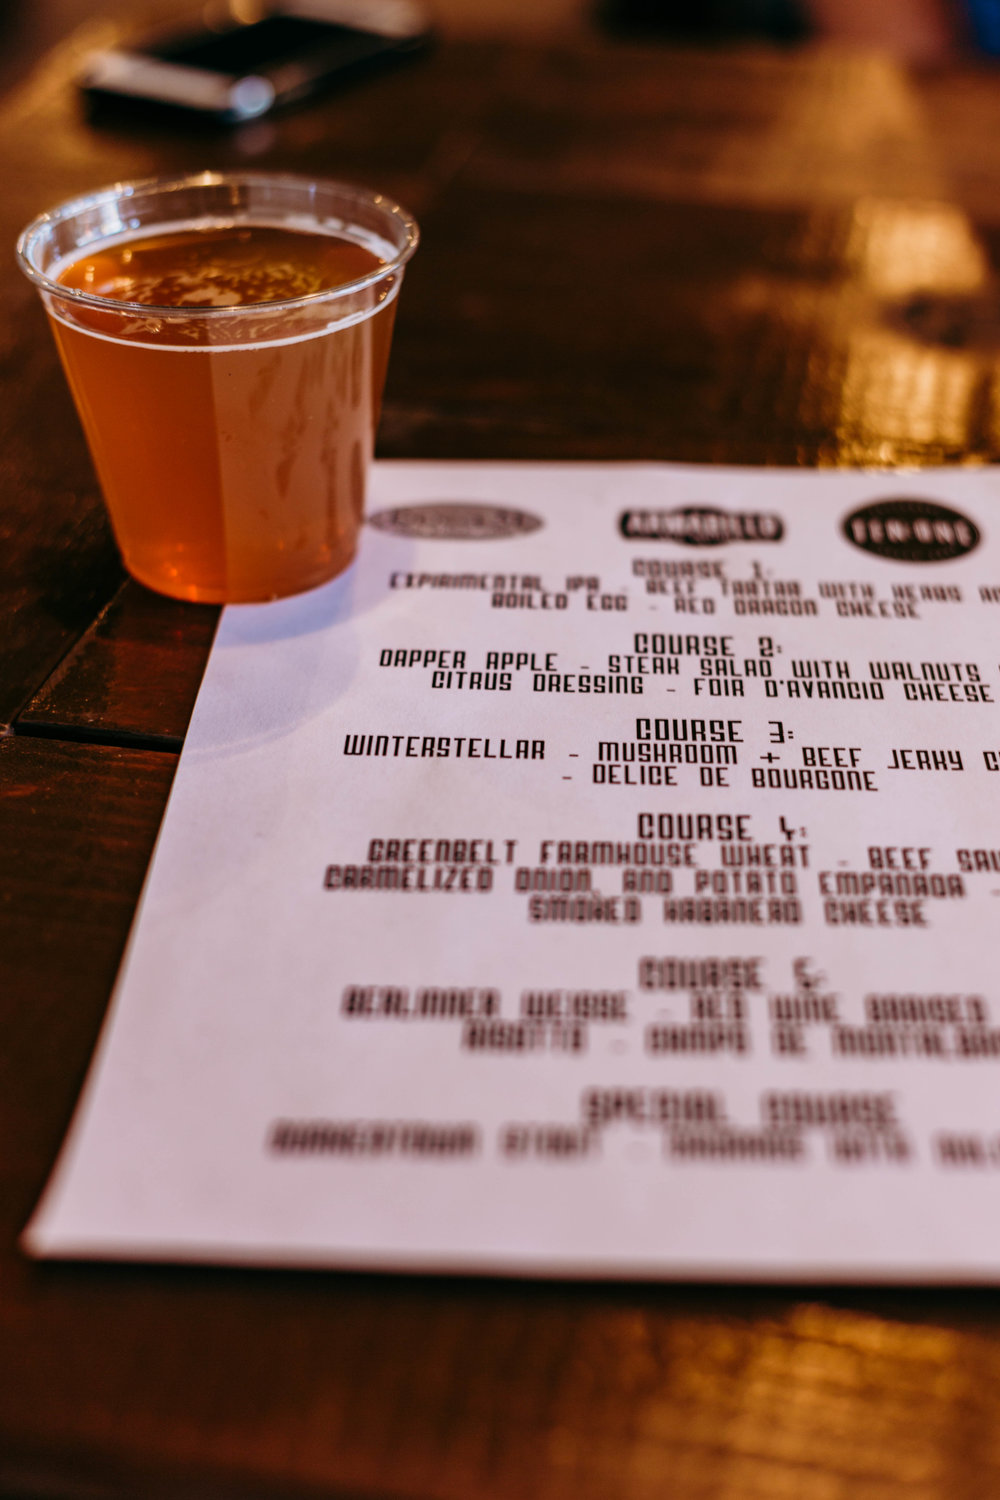 The first beer - the Experimental IPA - and the menu for the night. Photo by Jennifer Meza.